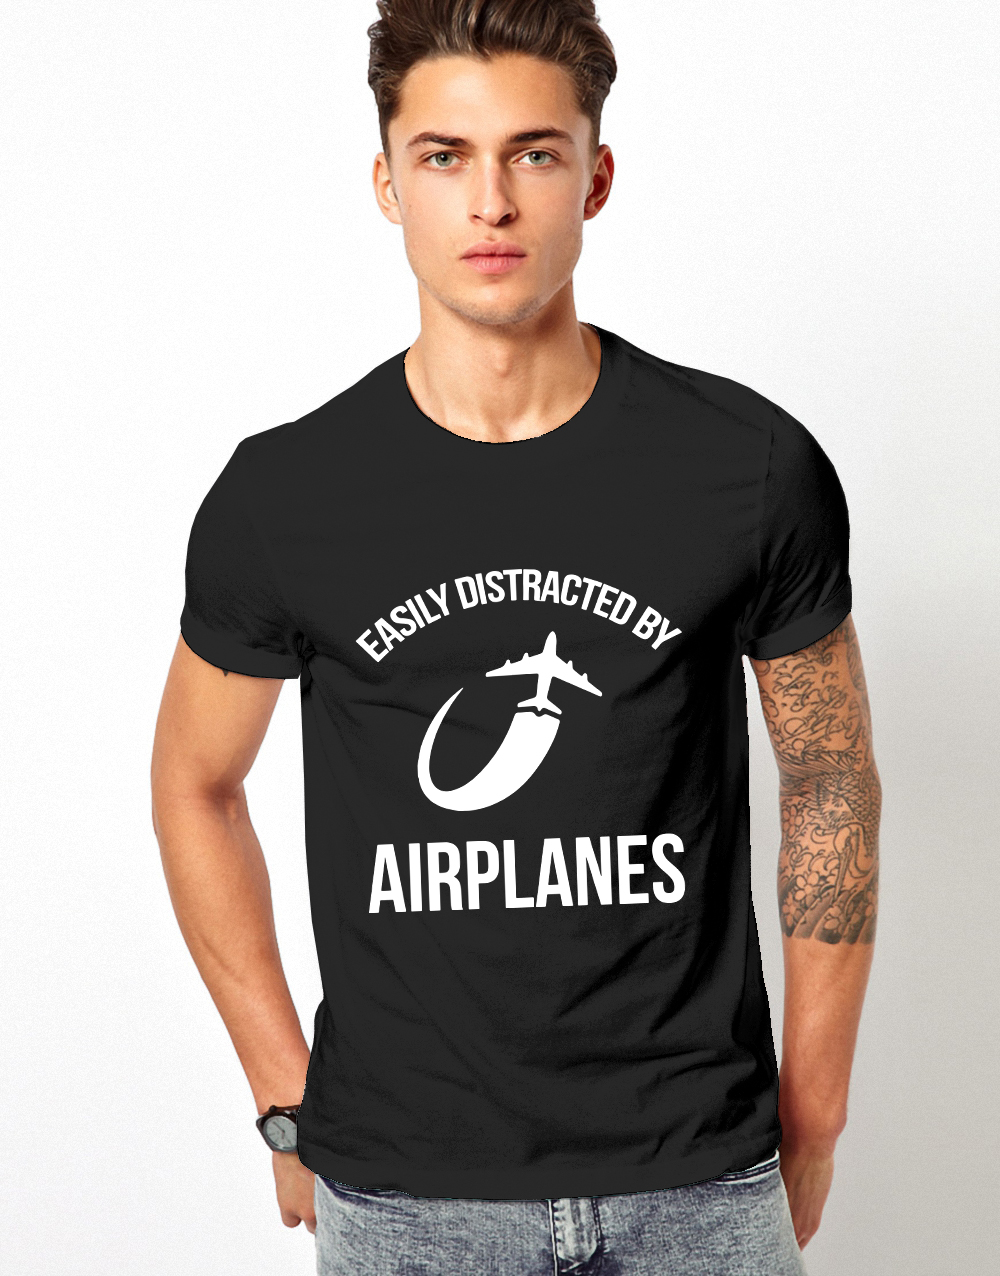 Easily distracted by airplanes shirt